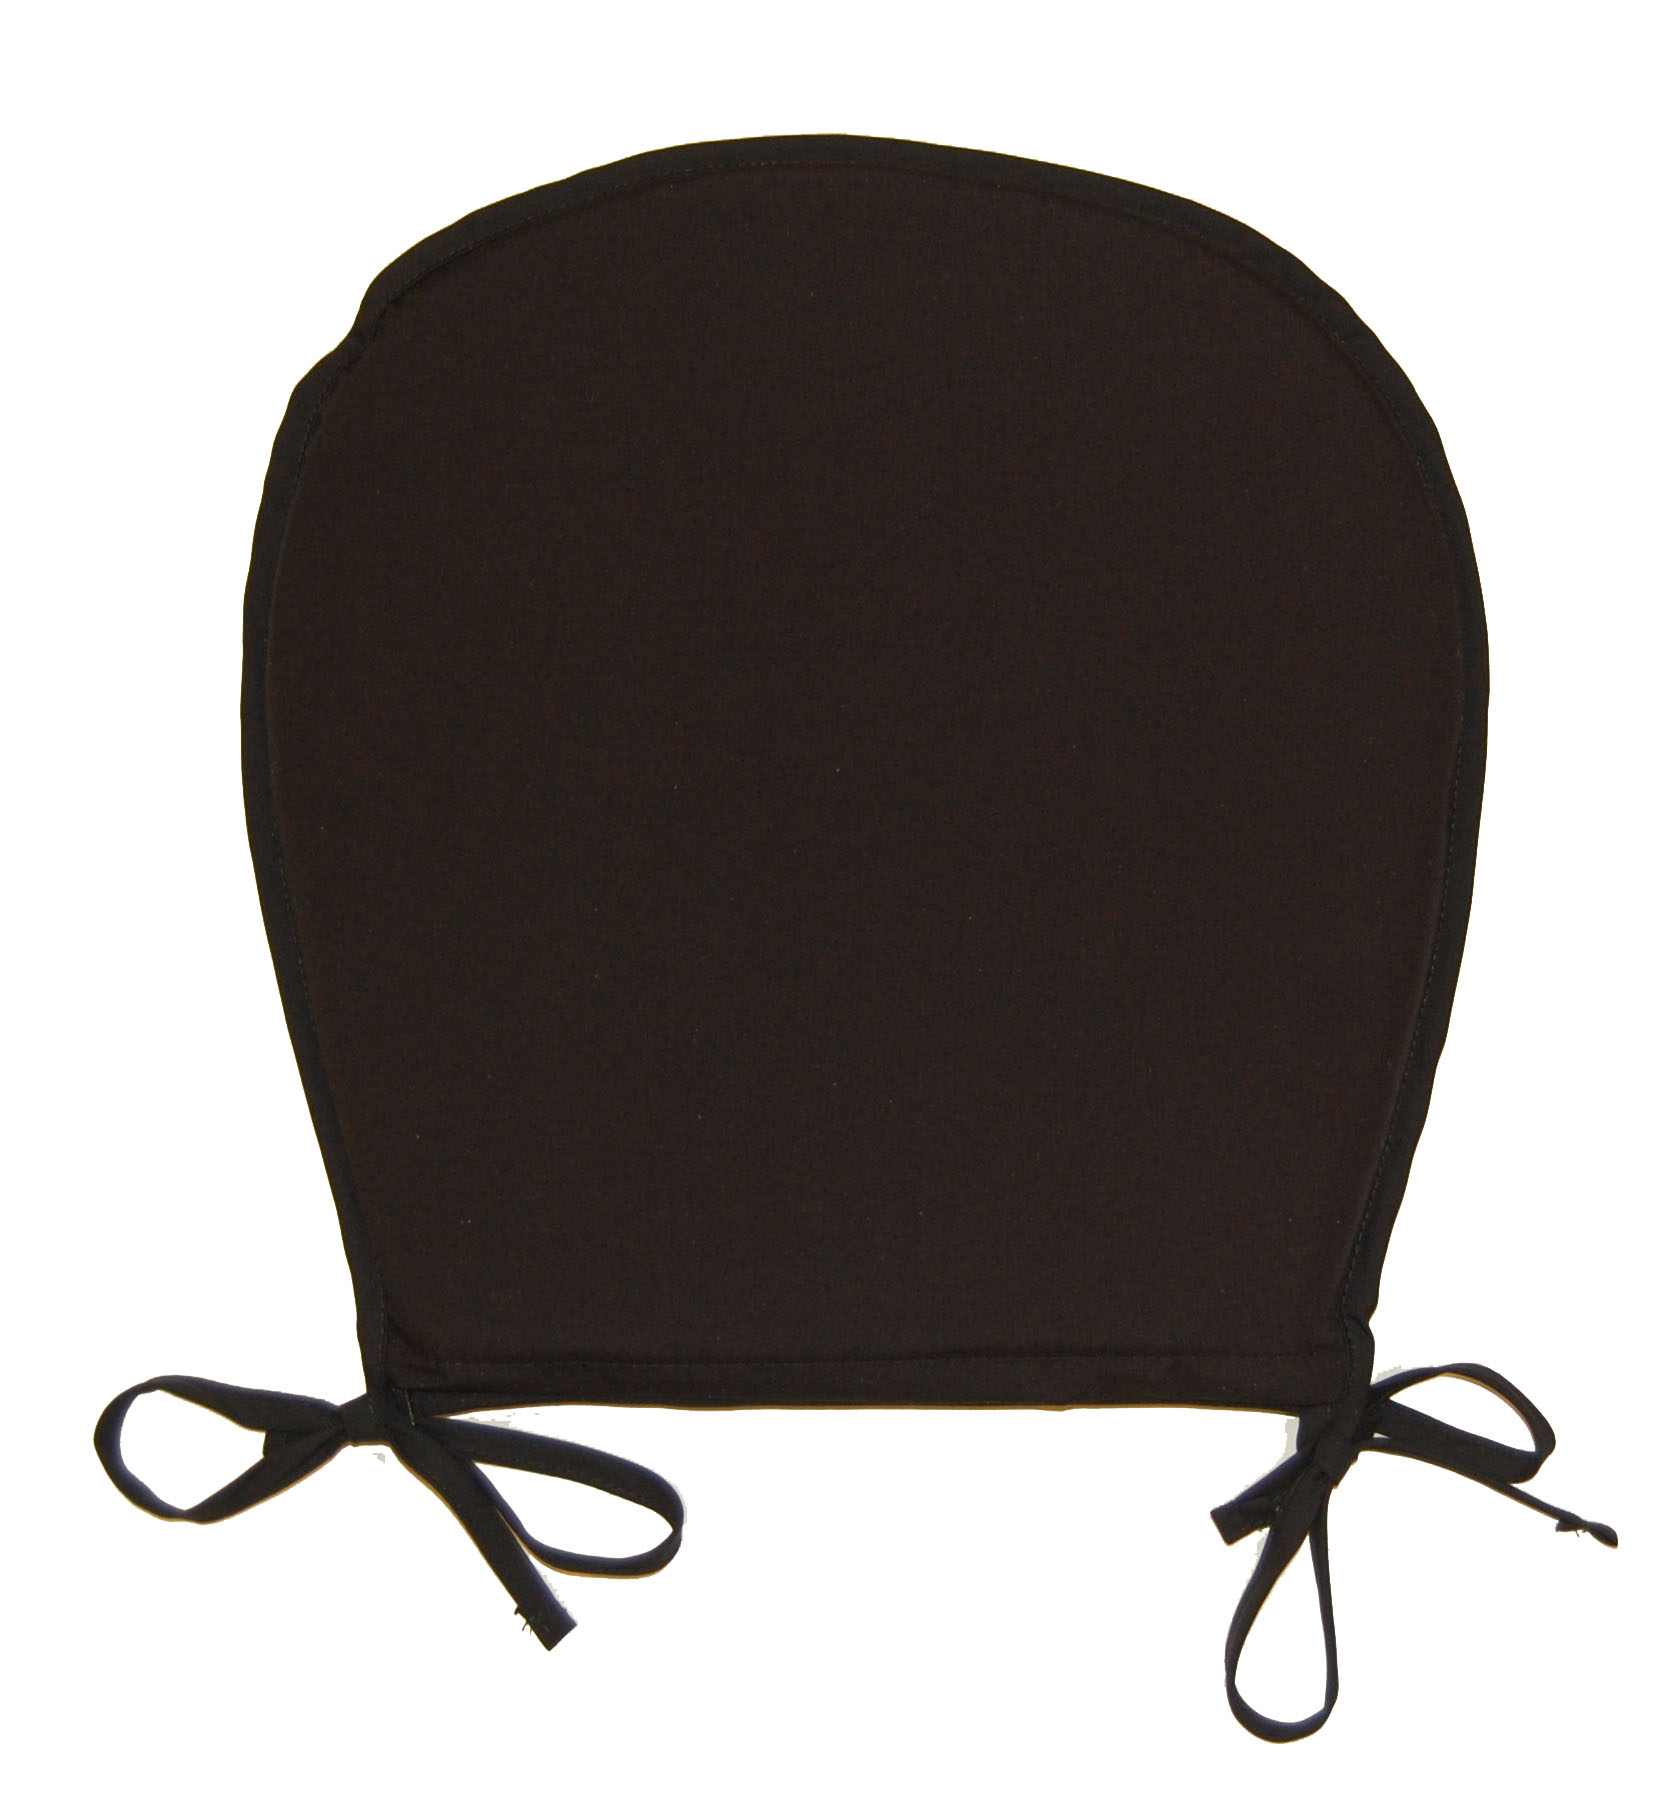 chair pads for kitchen chairs kitchen chair pads Great Chair Seat Pad kB jpeg